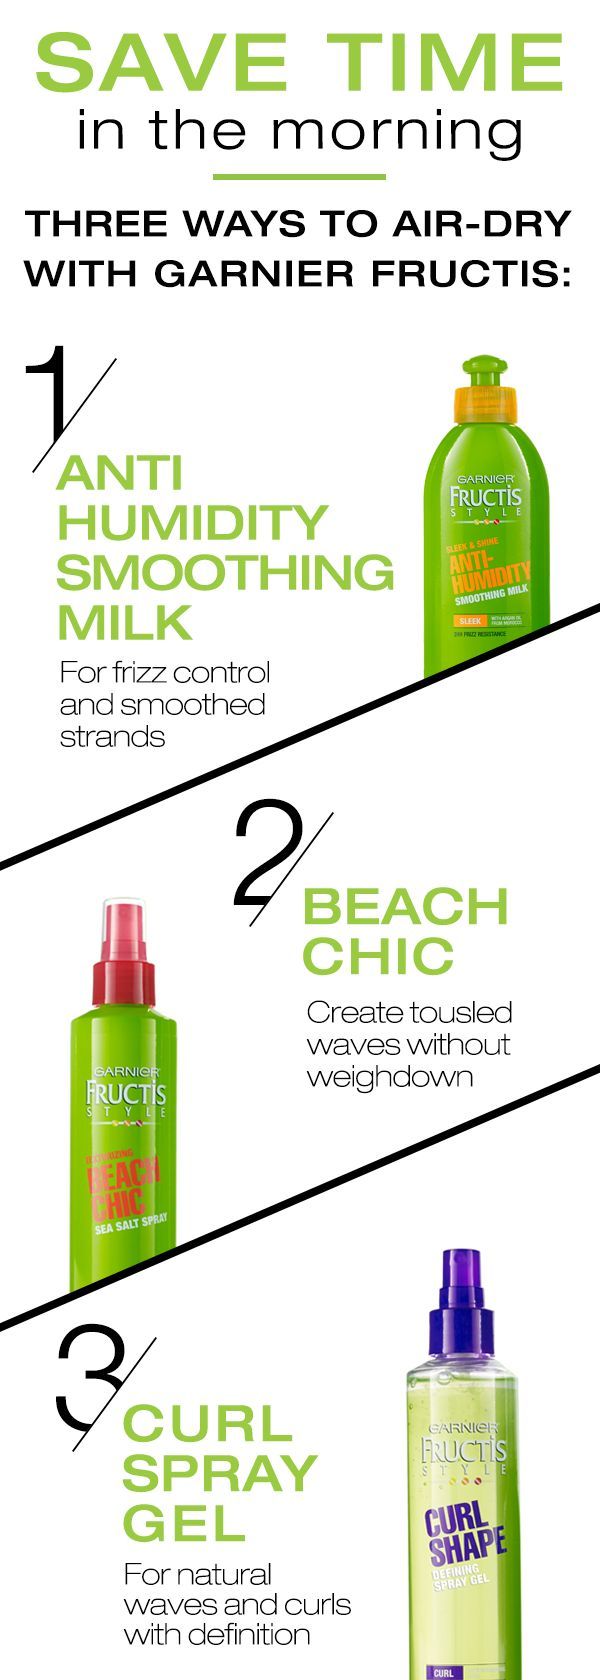 If you're in a time crunch in the morning, air drying your hair can be a big…